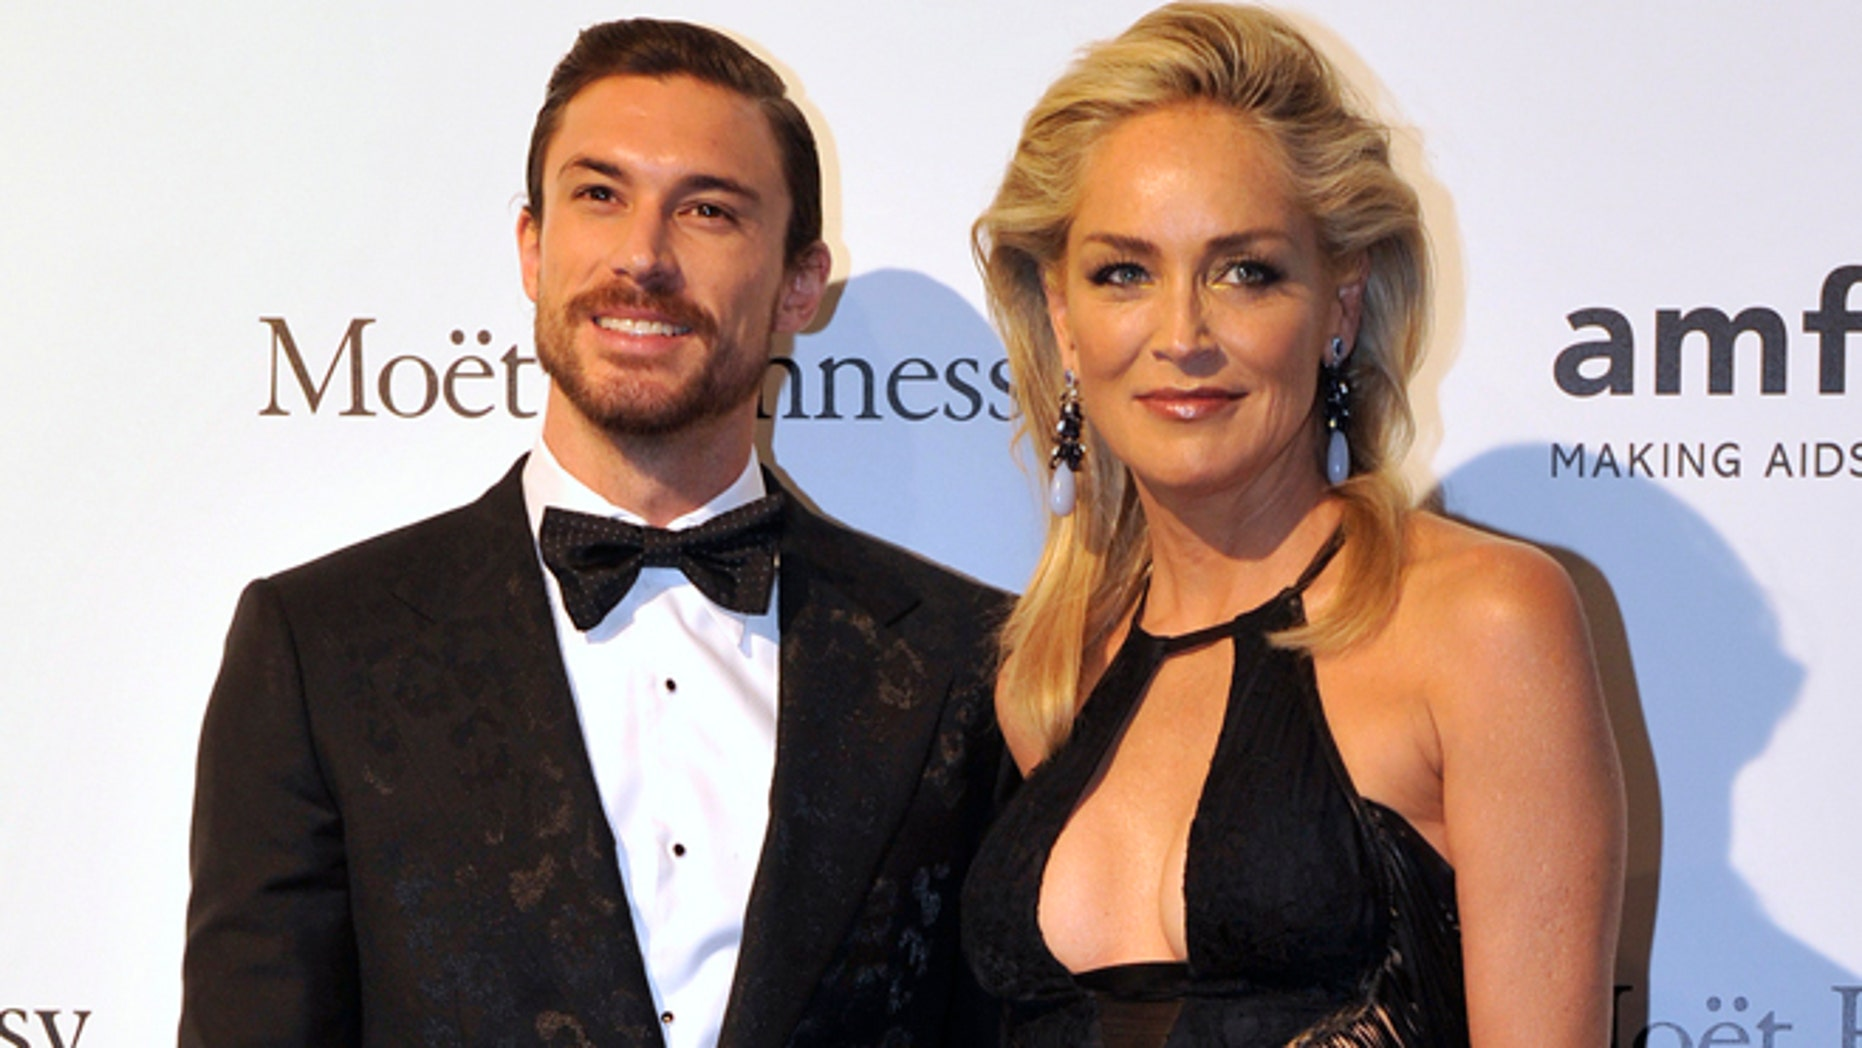 Actress Sharon Stone poses with her boyfriend Martin Mica before the charity dinner for The Foundation for AIDS Research (amfAR)'s during Milan's Fashion Week September 22, 2012.